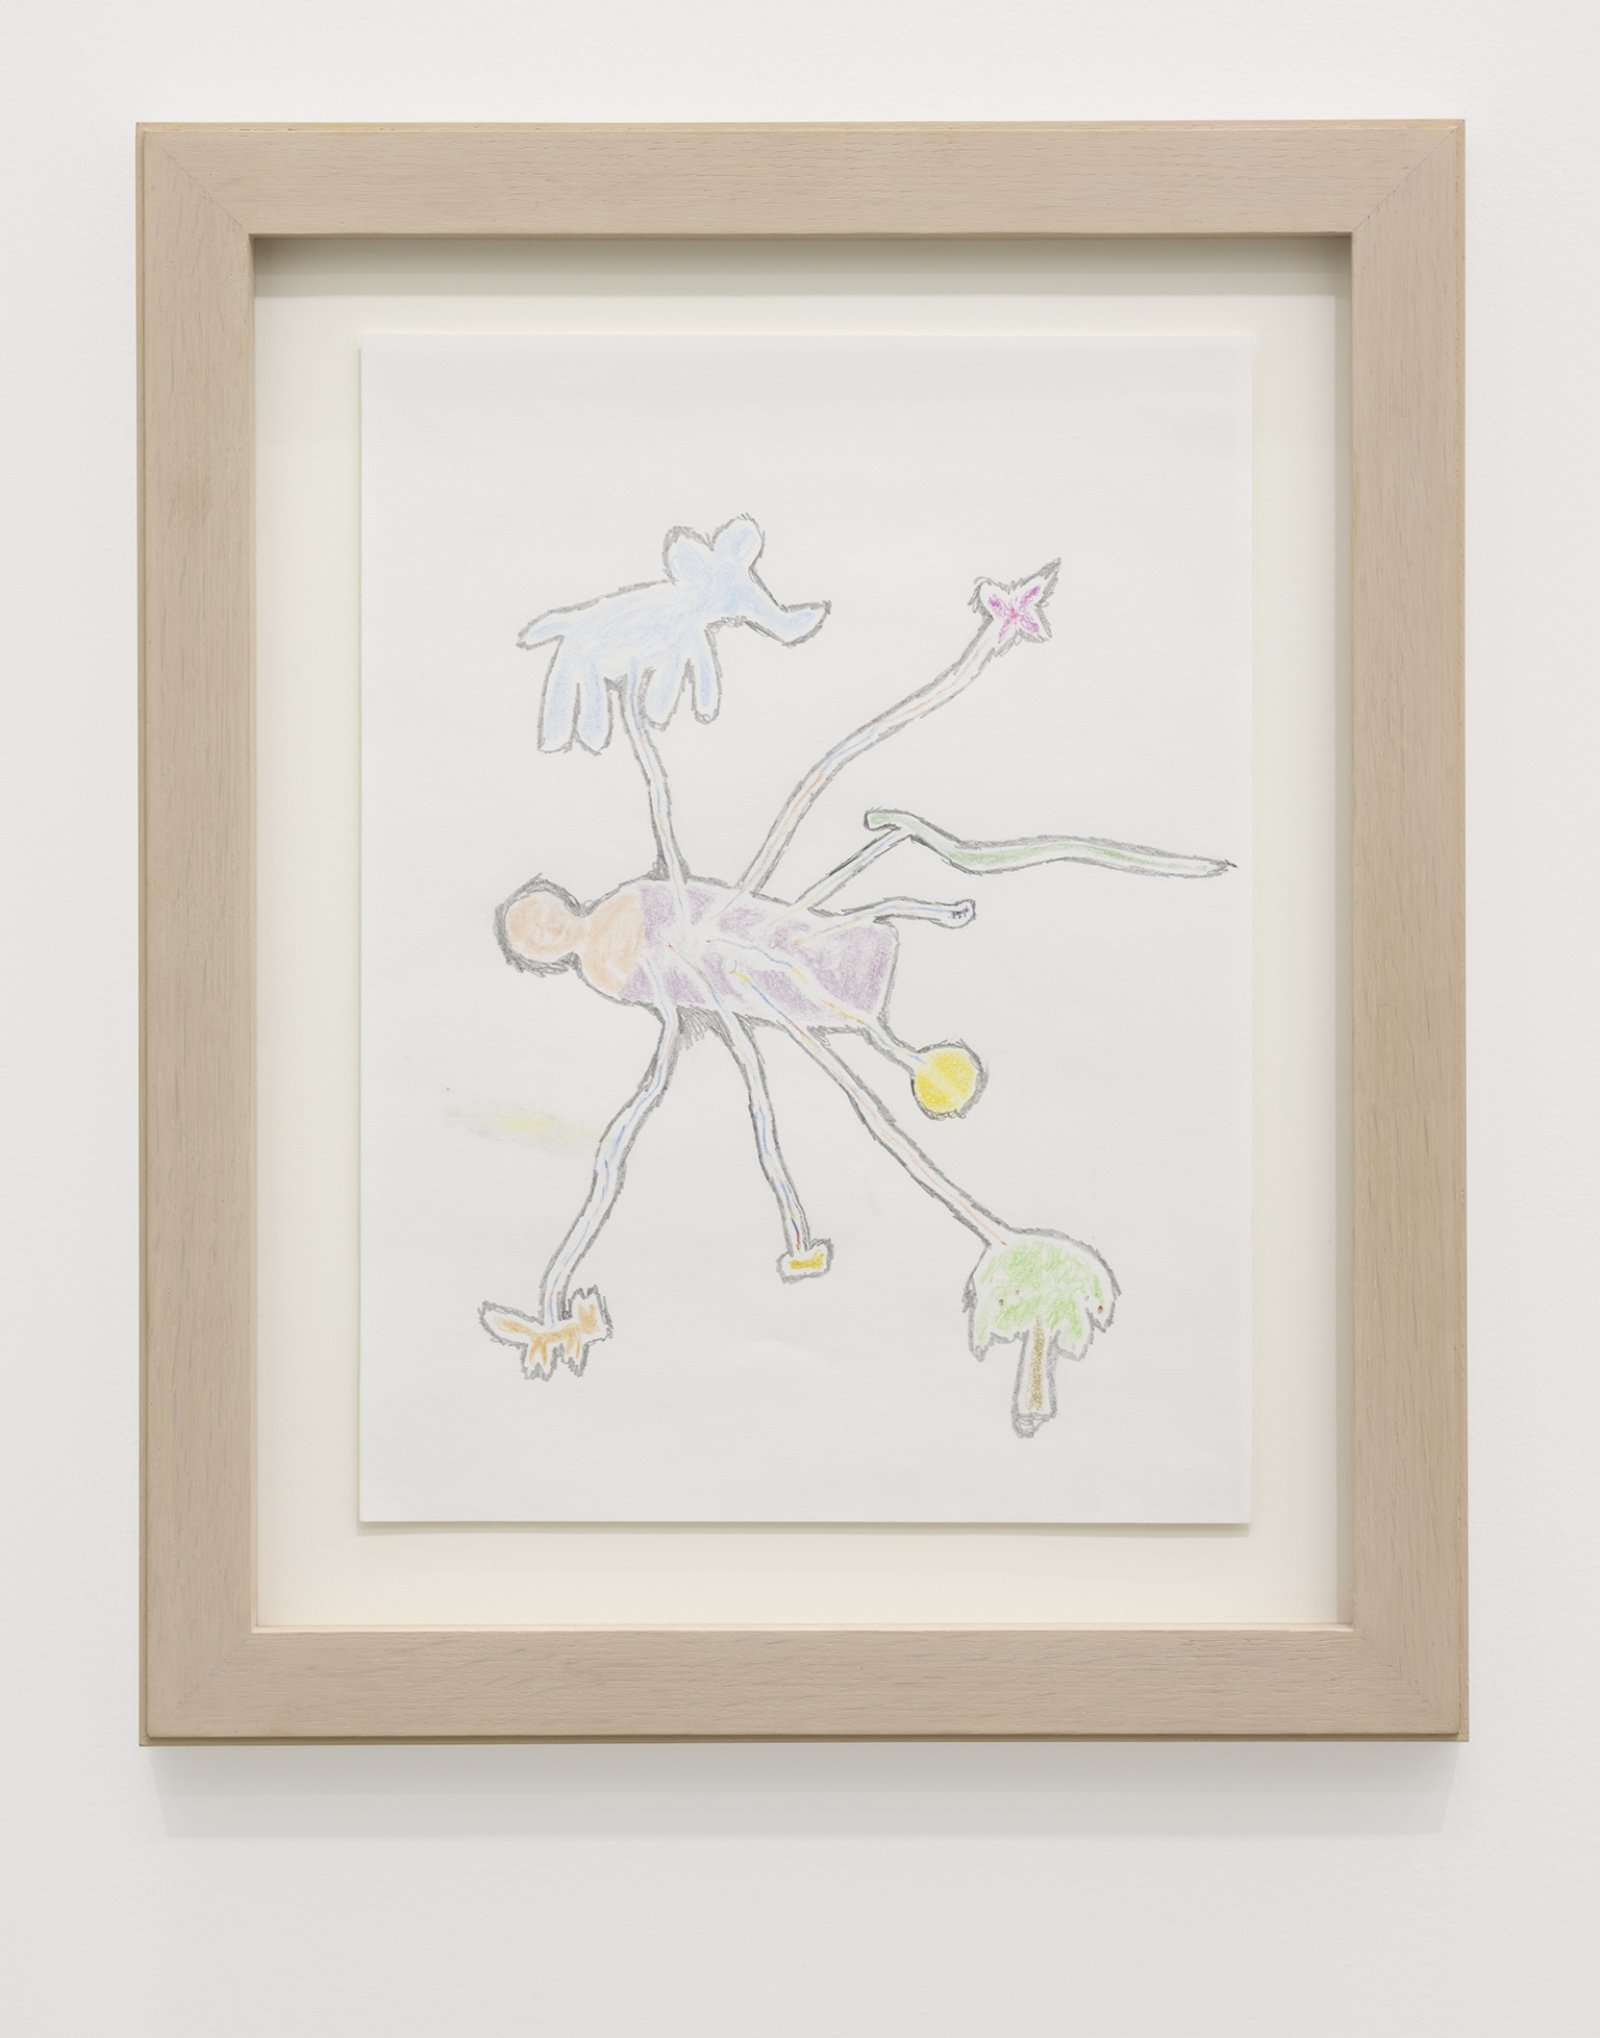 Ashes Withyman, Some kind of doctor receiving thunder, 2020, coloured pencil and graphite on paper, 16 x 13 in. (41 x 33 cm) by Ashes Withyman